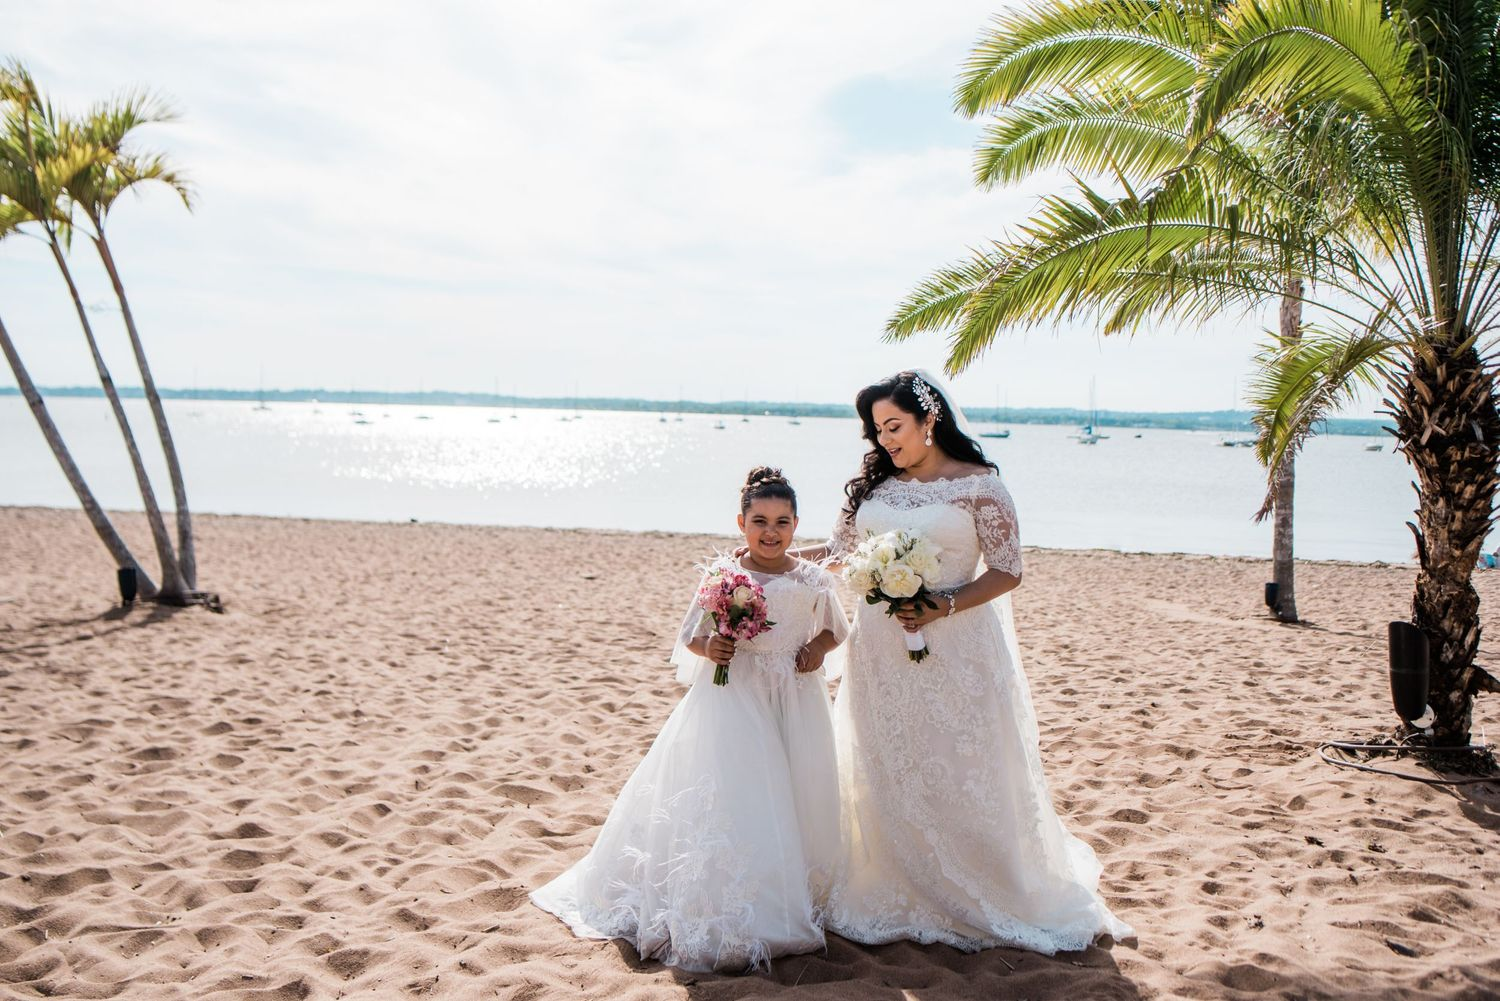 bride and junior bride on beach